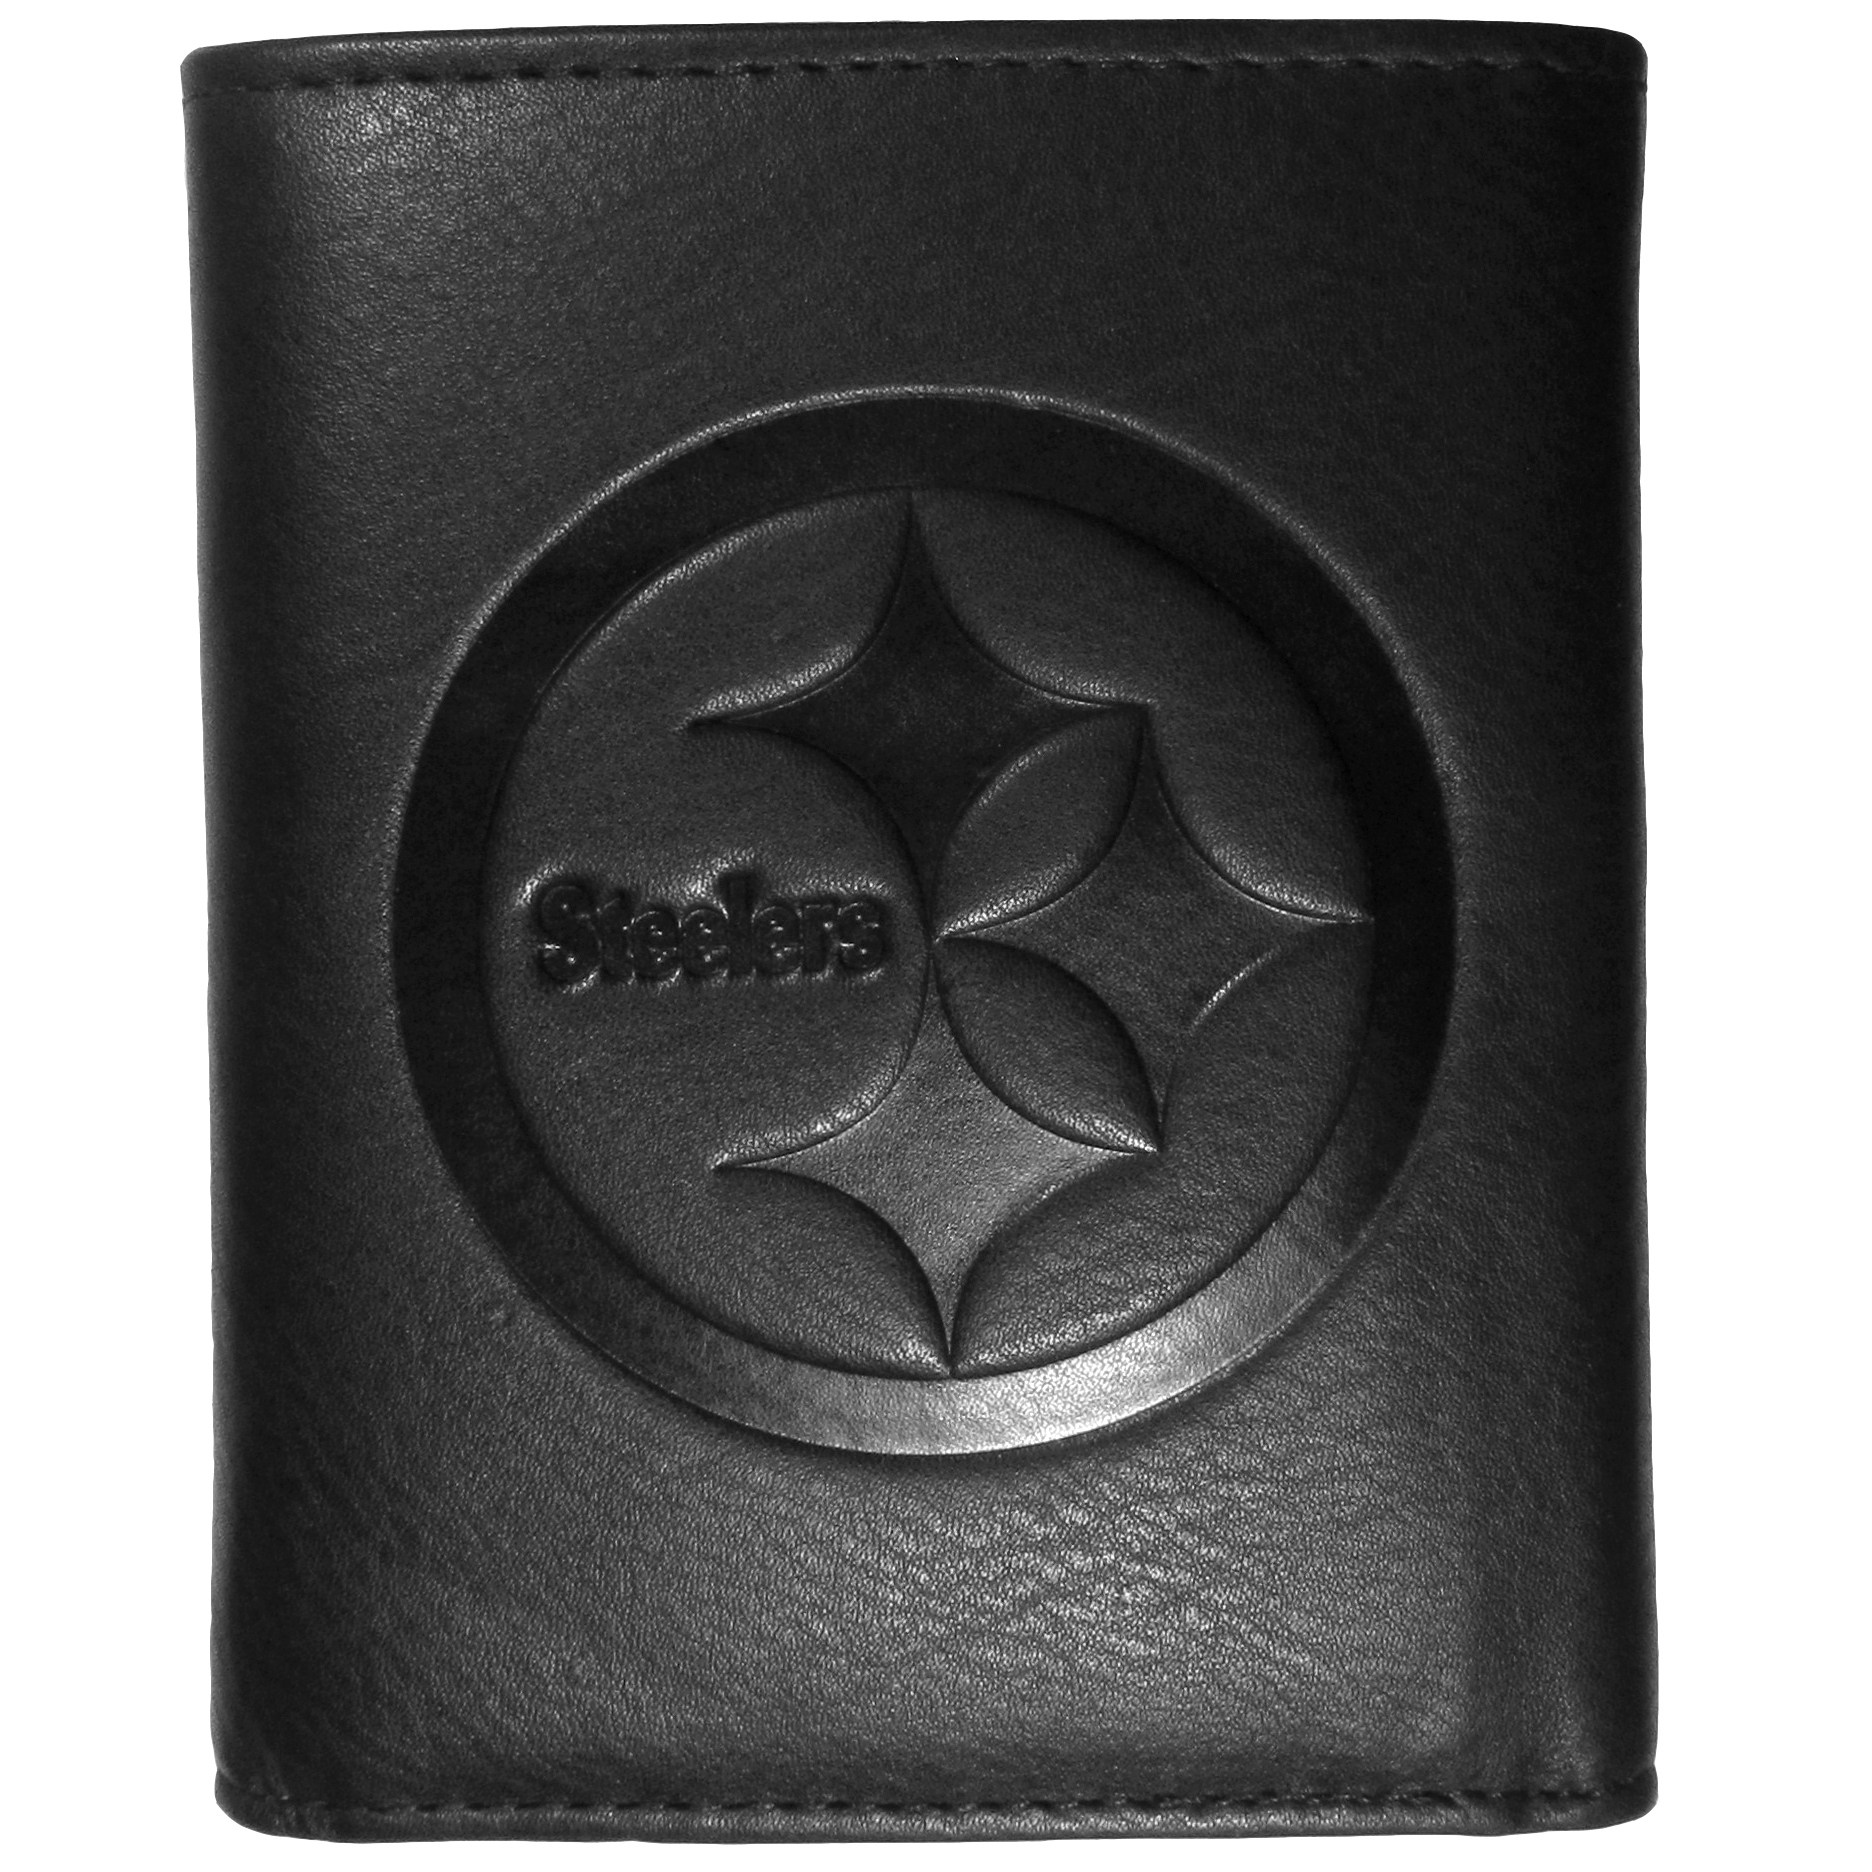 Pittsburgh Steelers Embossed Leather Tri-fold Wallet - This stylish leather wallet is made of high quality leather with a supple feel and classic look. The front of the tri-fold style wallet has a deeply embossed Pittsburgh Steelers logo. The billfold is packed with features that will allow to keep organized, lots of credit card slots, windowed ID slot, large pockets for bills and a removable sleeve with extra slots for even more storage. This is a must-have men's fashion accessory that would make any fan very proud to own.